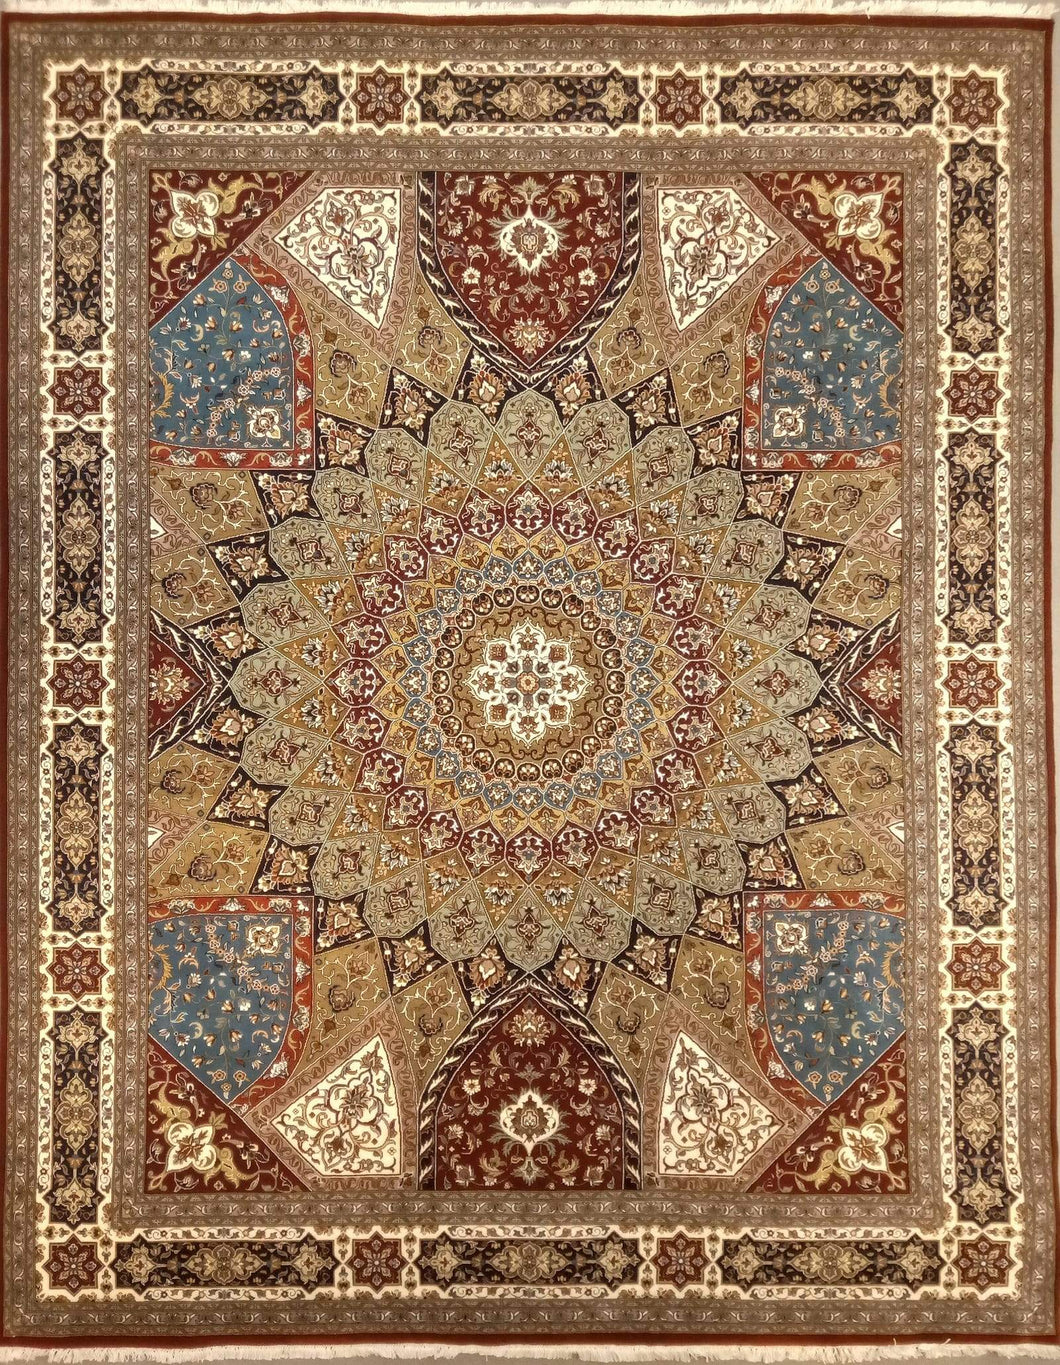 The Rugs Cafe Carpets 8 x 10 / Red Gol Gumbad Design Carpet (Inspired by Taj Mahal's Dome) Red